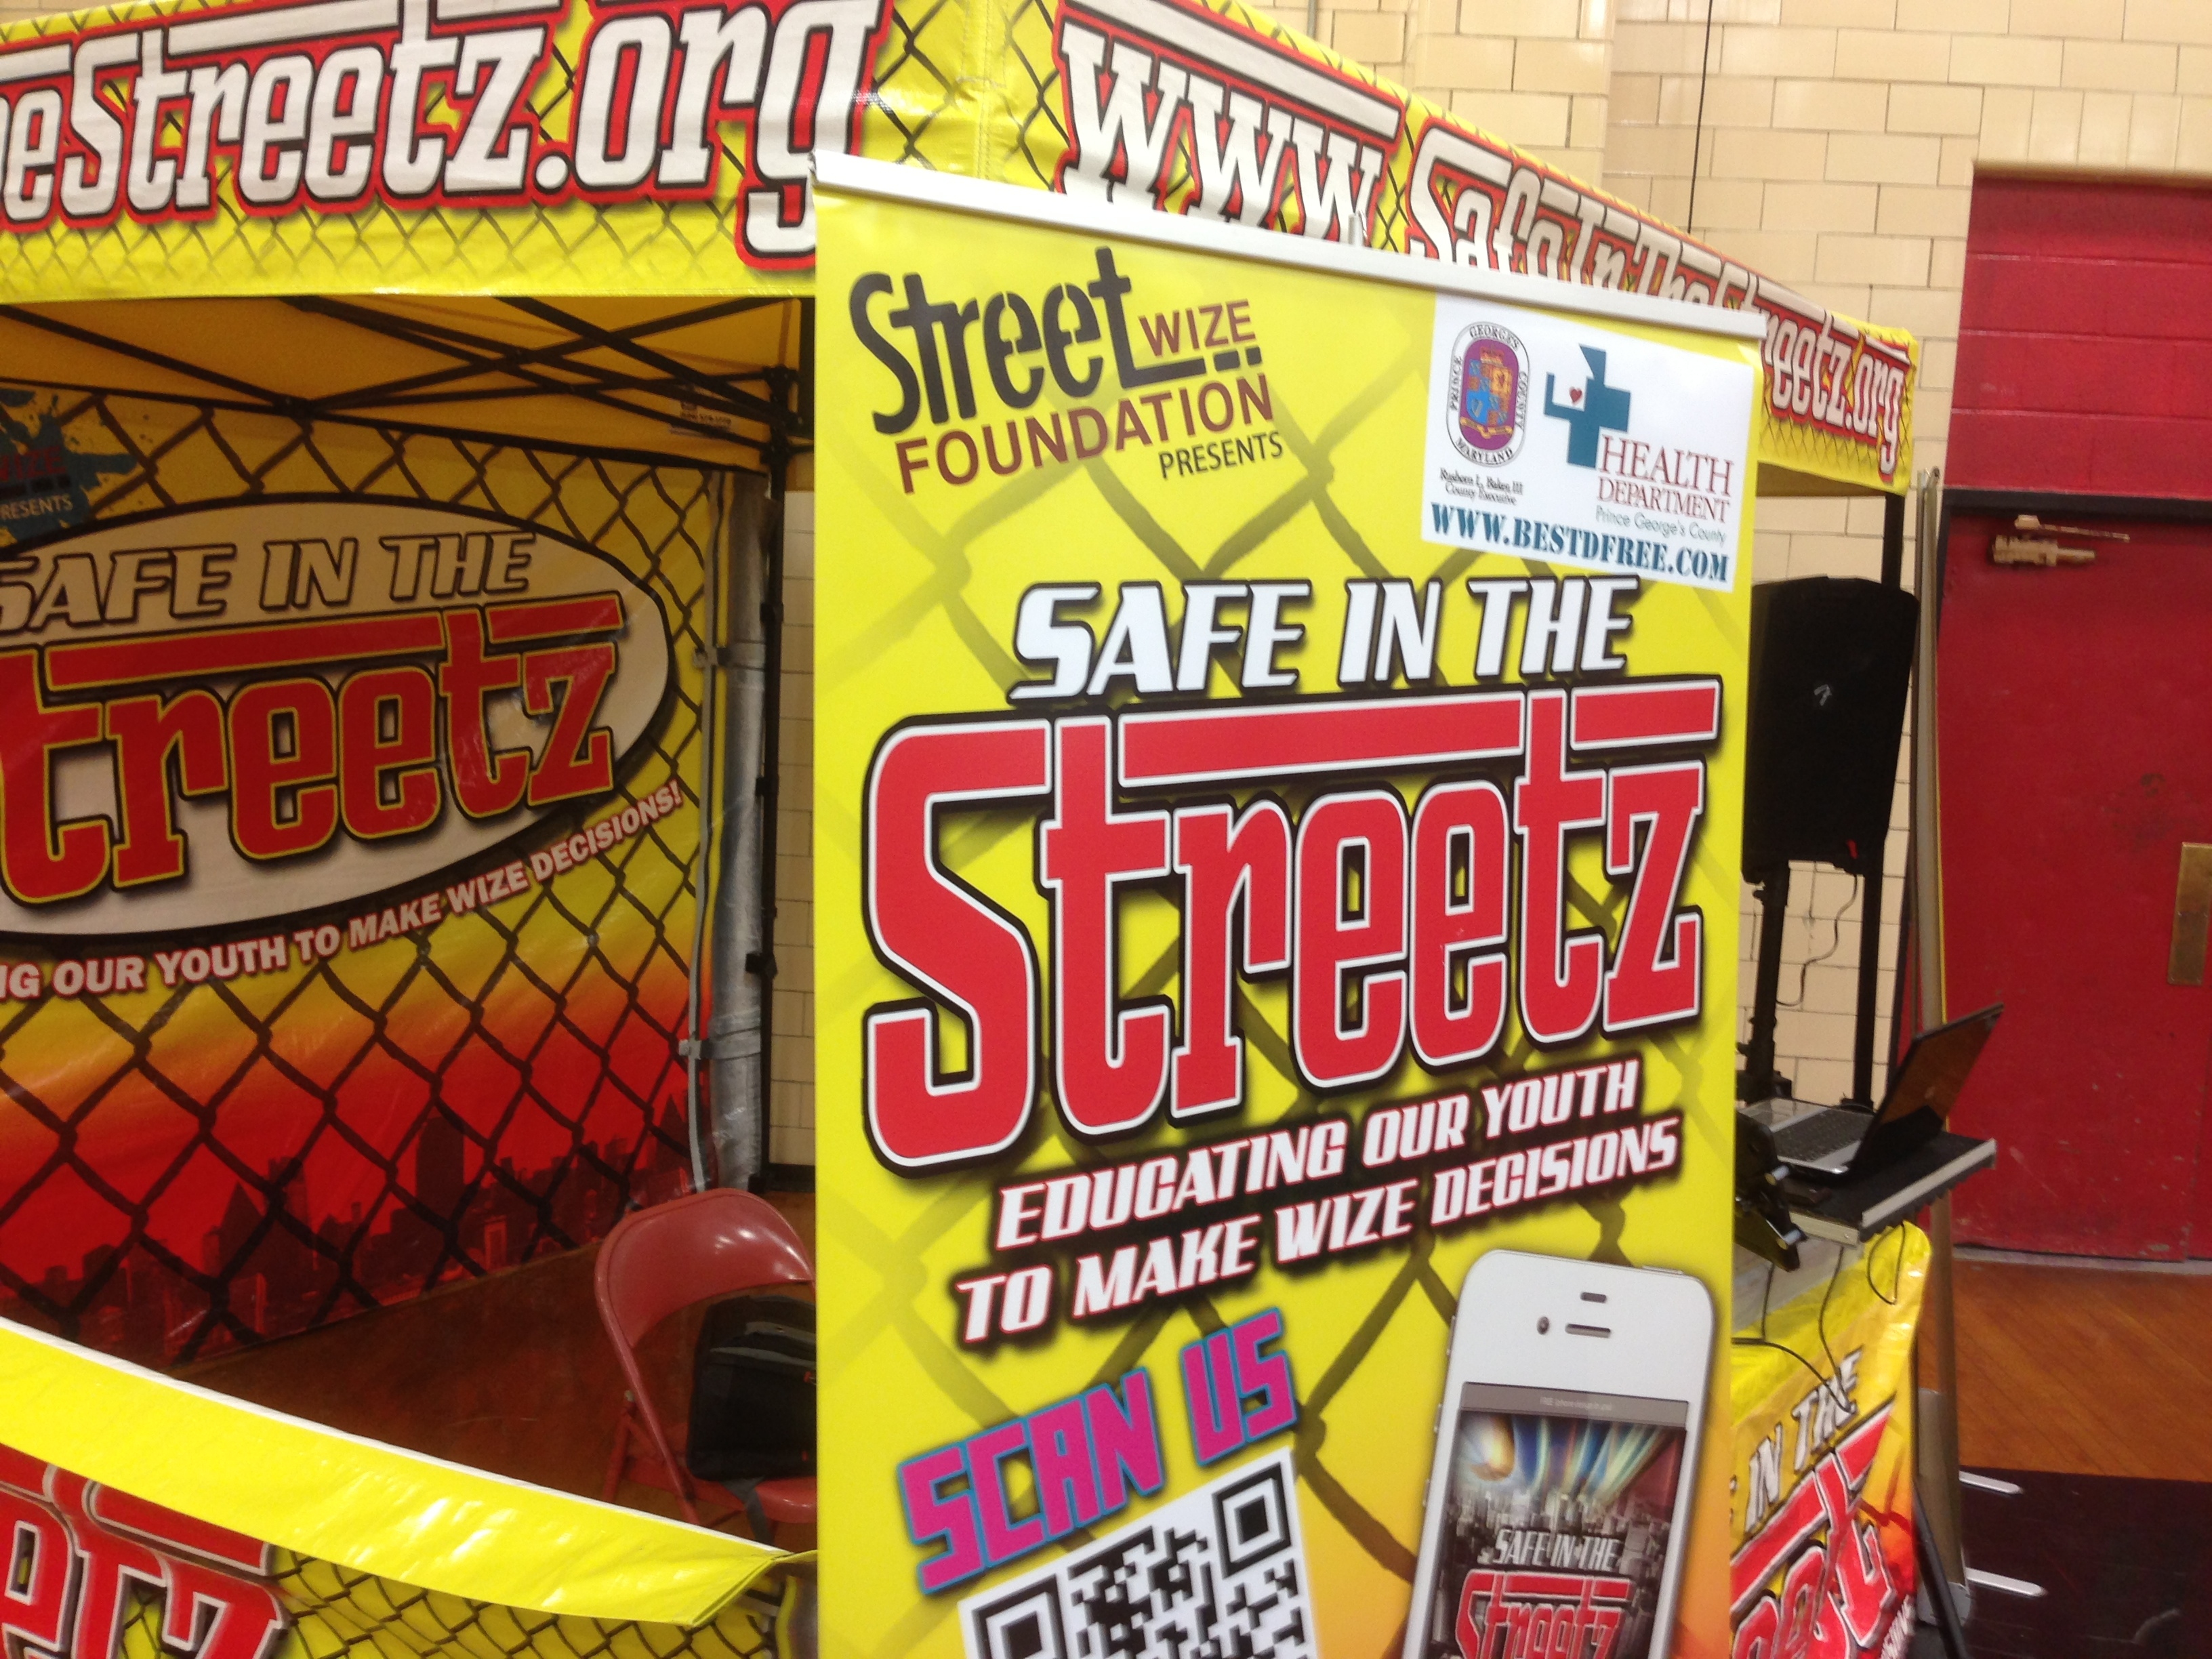 Silence the Violence Charity Basket Ball Game is Safe in the Streetz